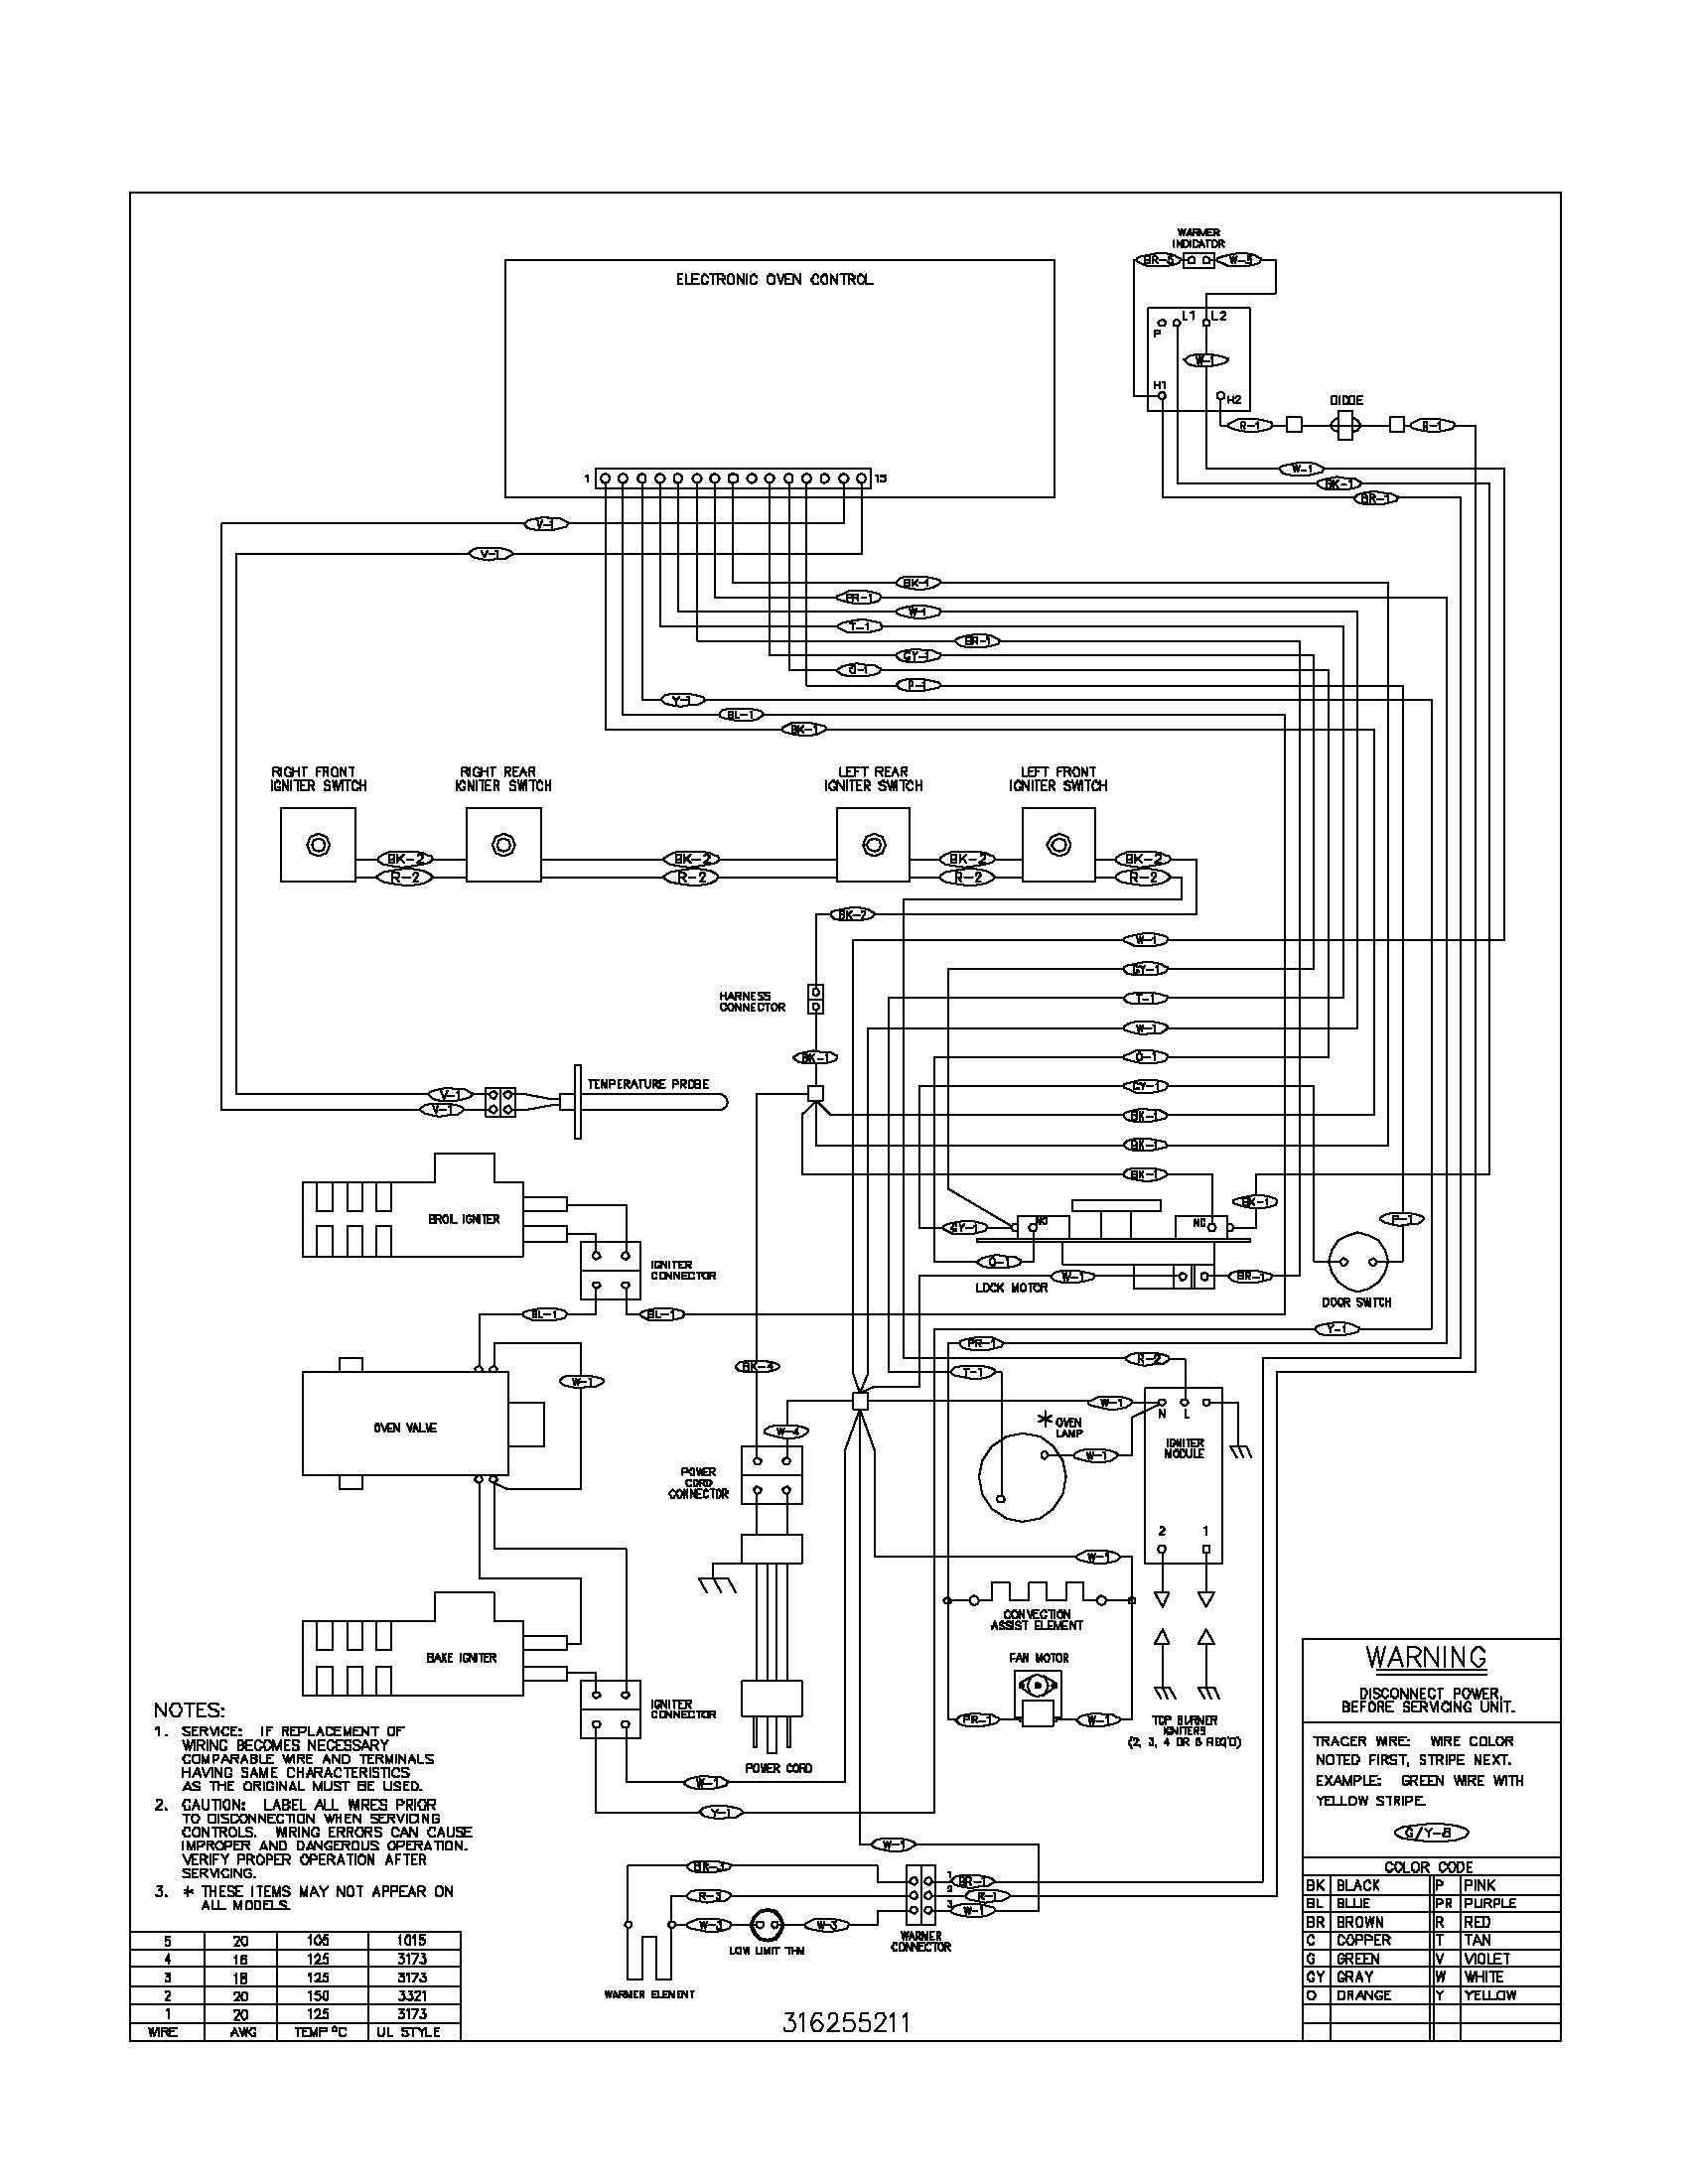 frigidaire dryer wiring diagram Collection-frigidaire refrigerator wiring diagram wiring diagram for frigidaire refrigerator wiring diagram best ideas 20f 18-d